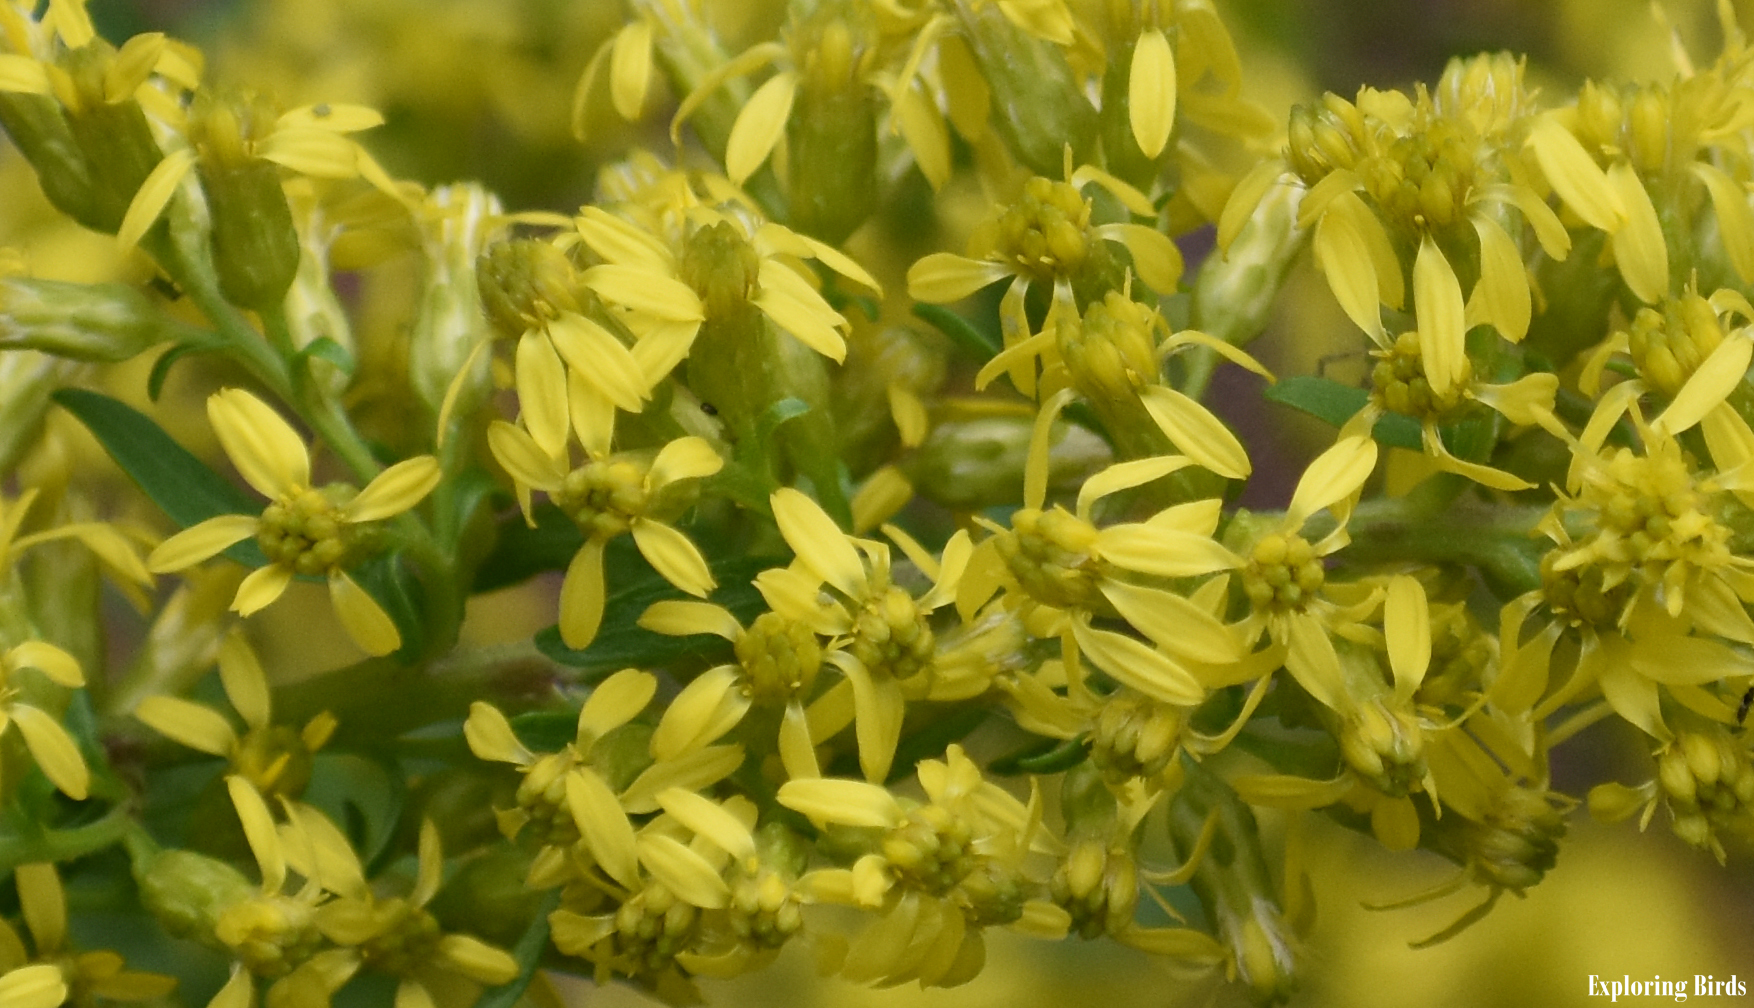 Goldenrod is a flower that attracts birds